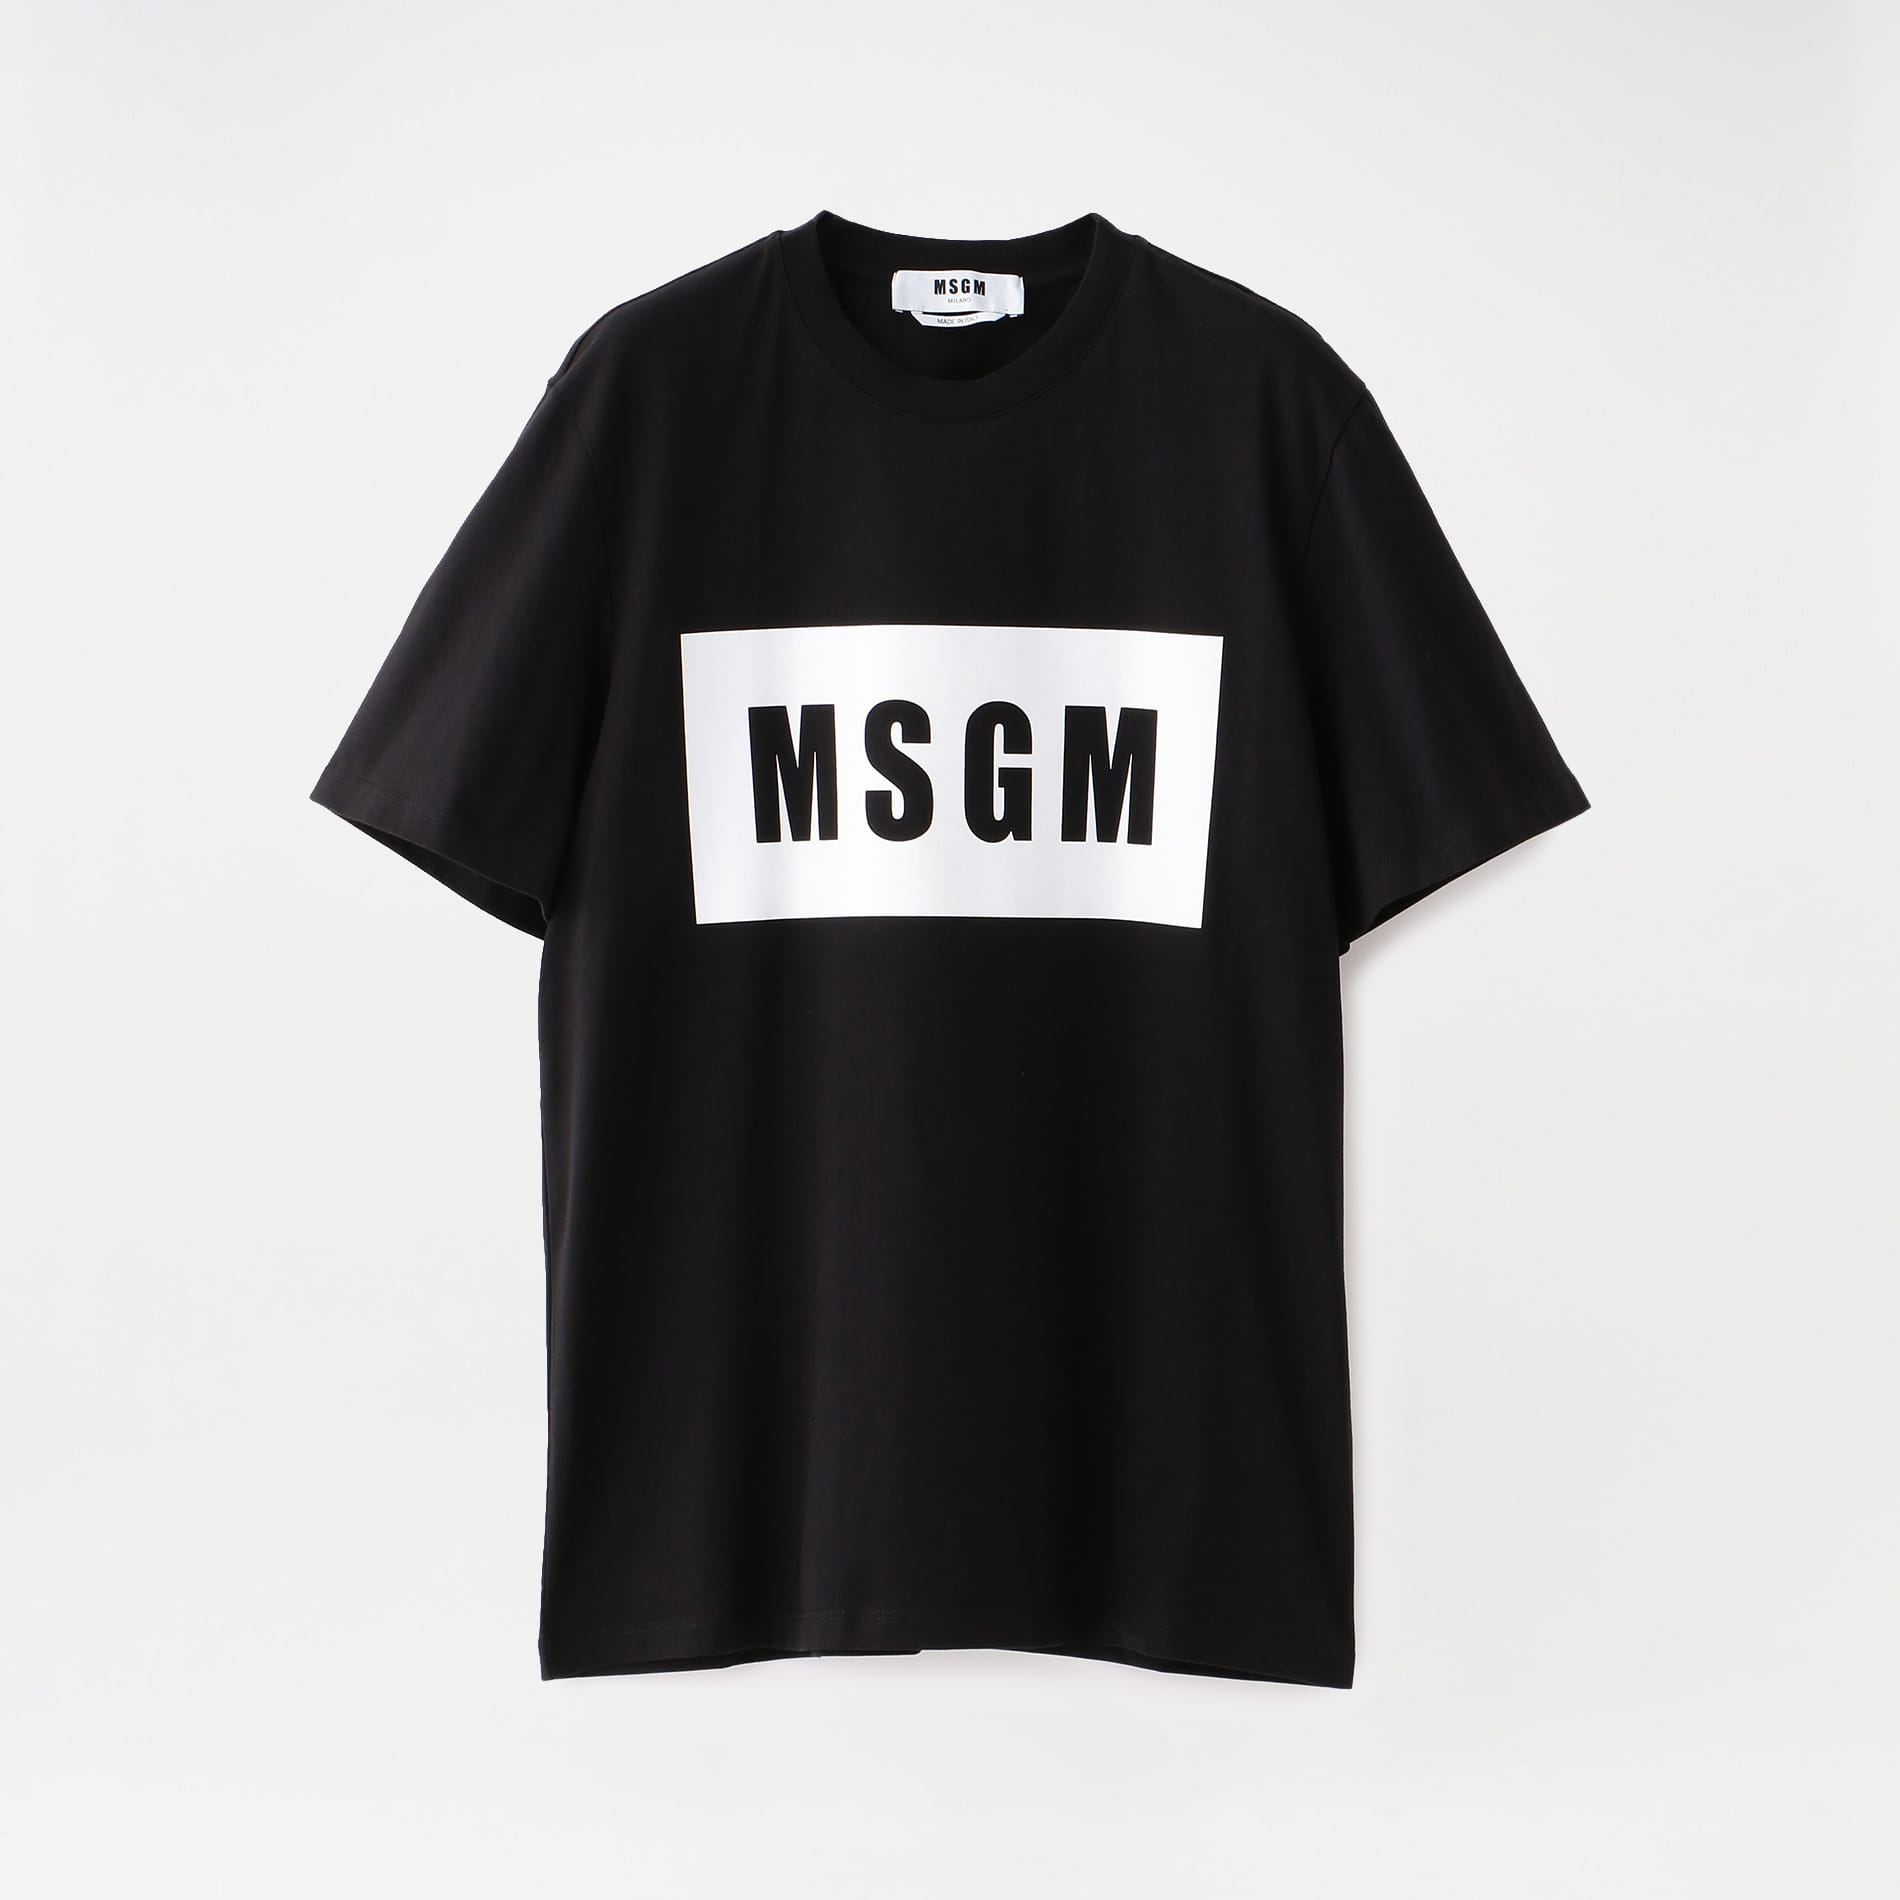 【MSGM】MEN T-SHIRT 2840MM67 207098